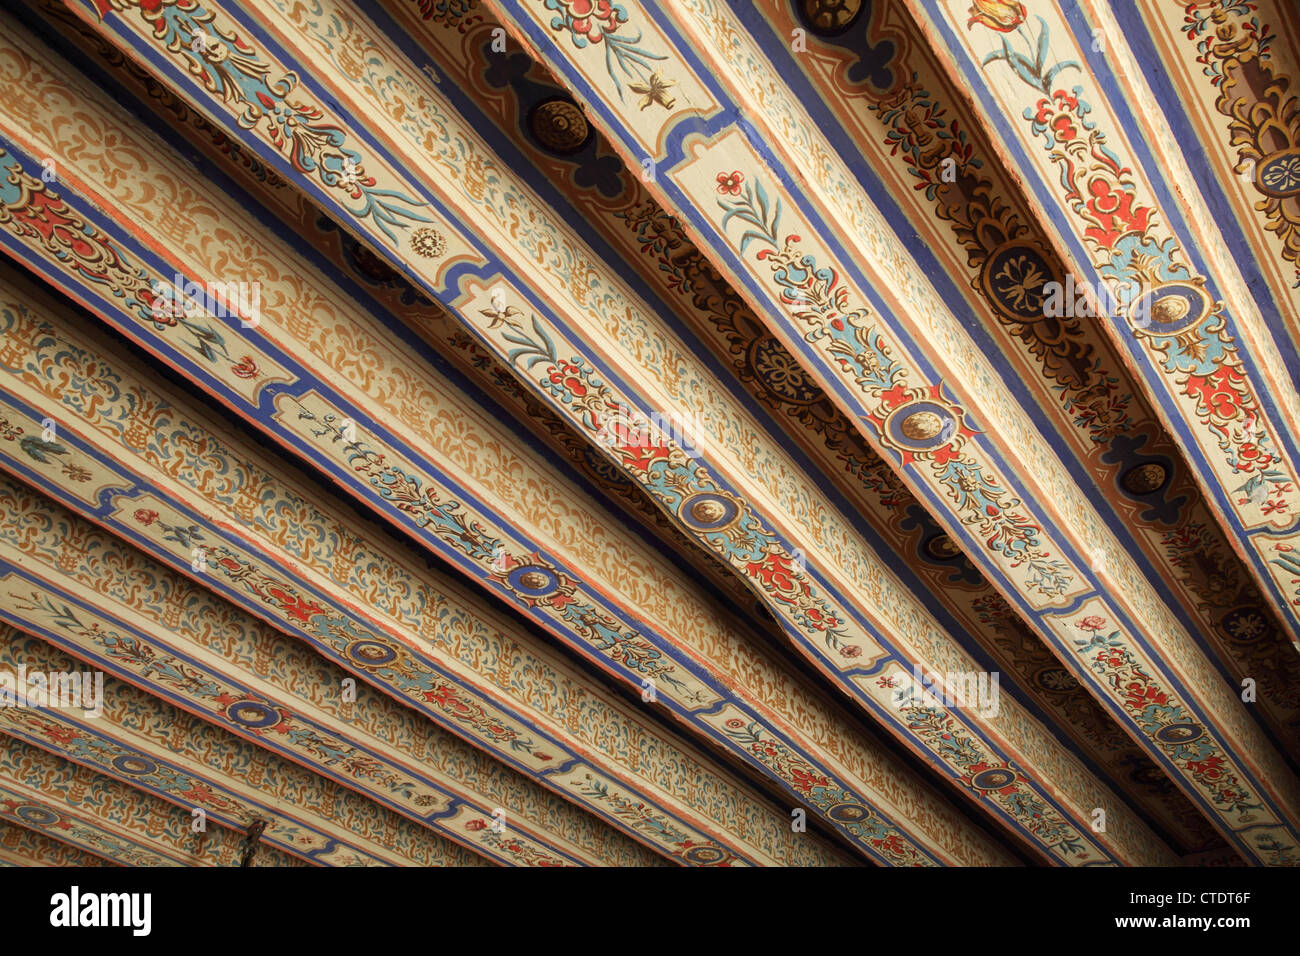 Painted Ceiling Beams High Resolution Stock Photography And Images Alamy